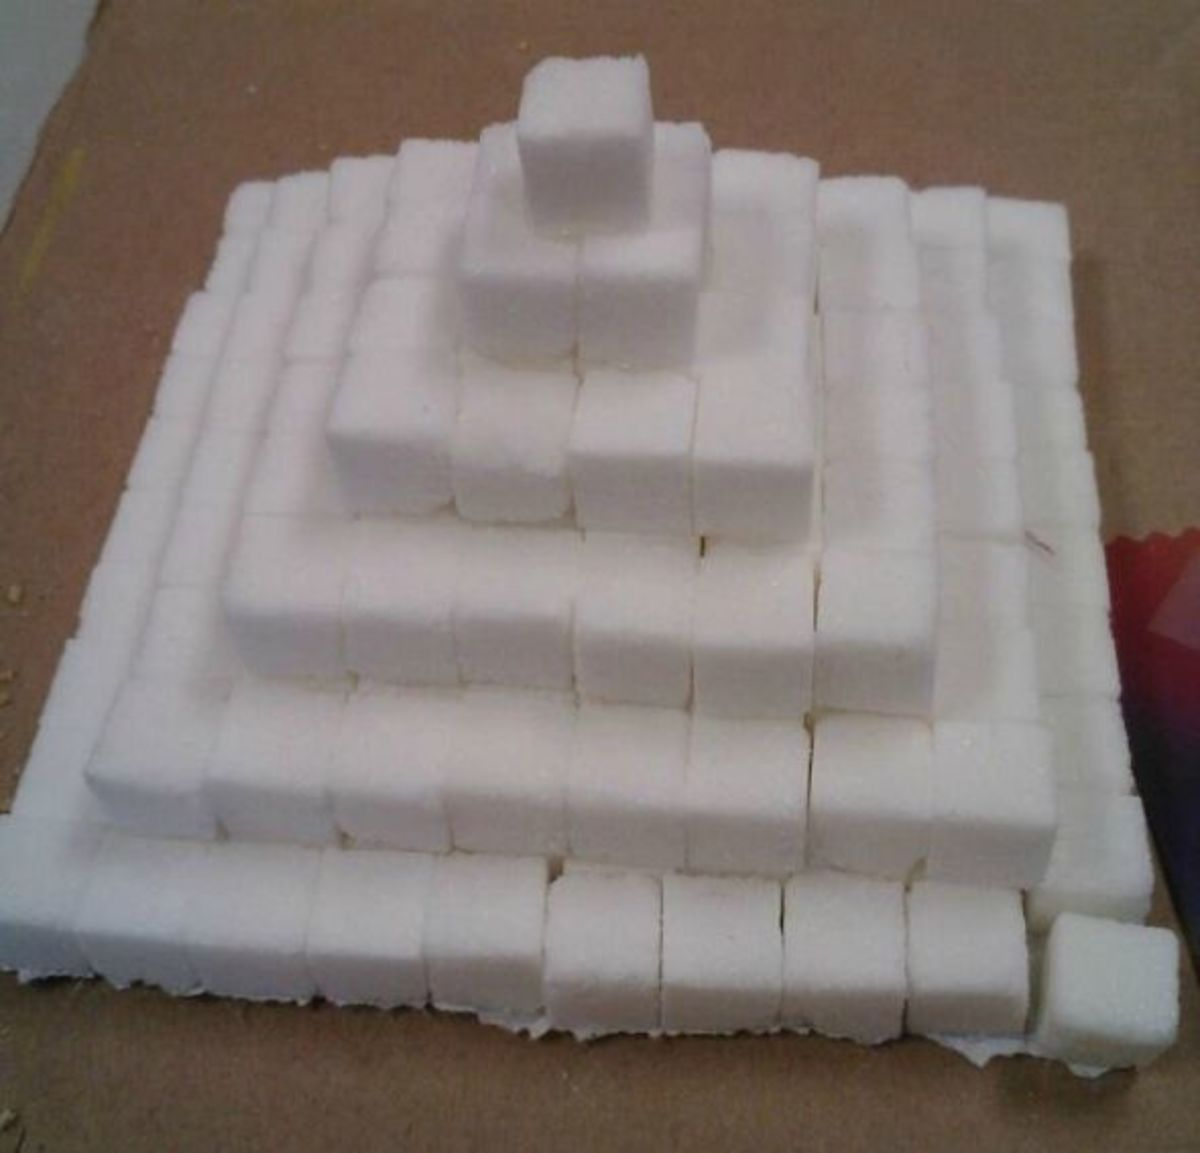 3d Pyramid Model Project Ideas Hubpages